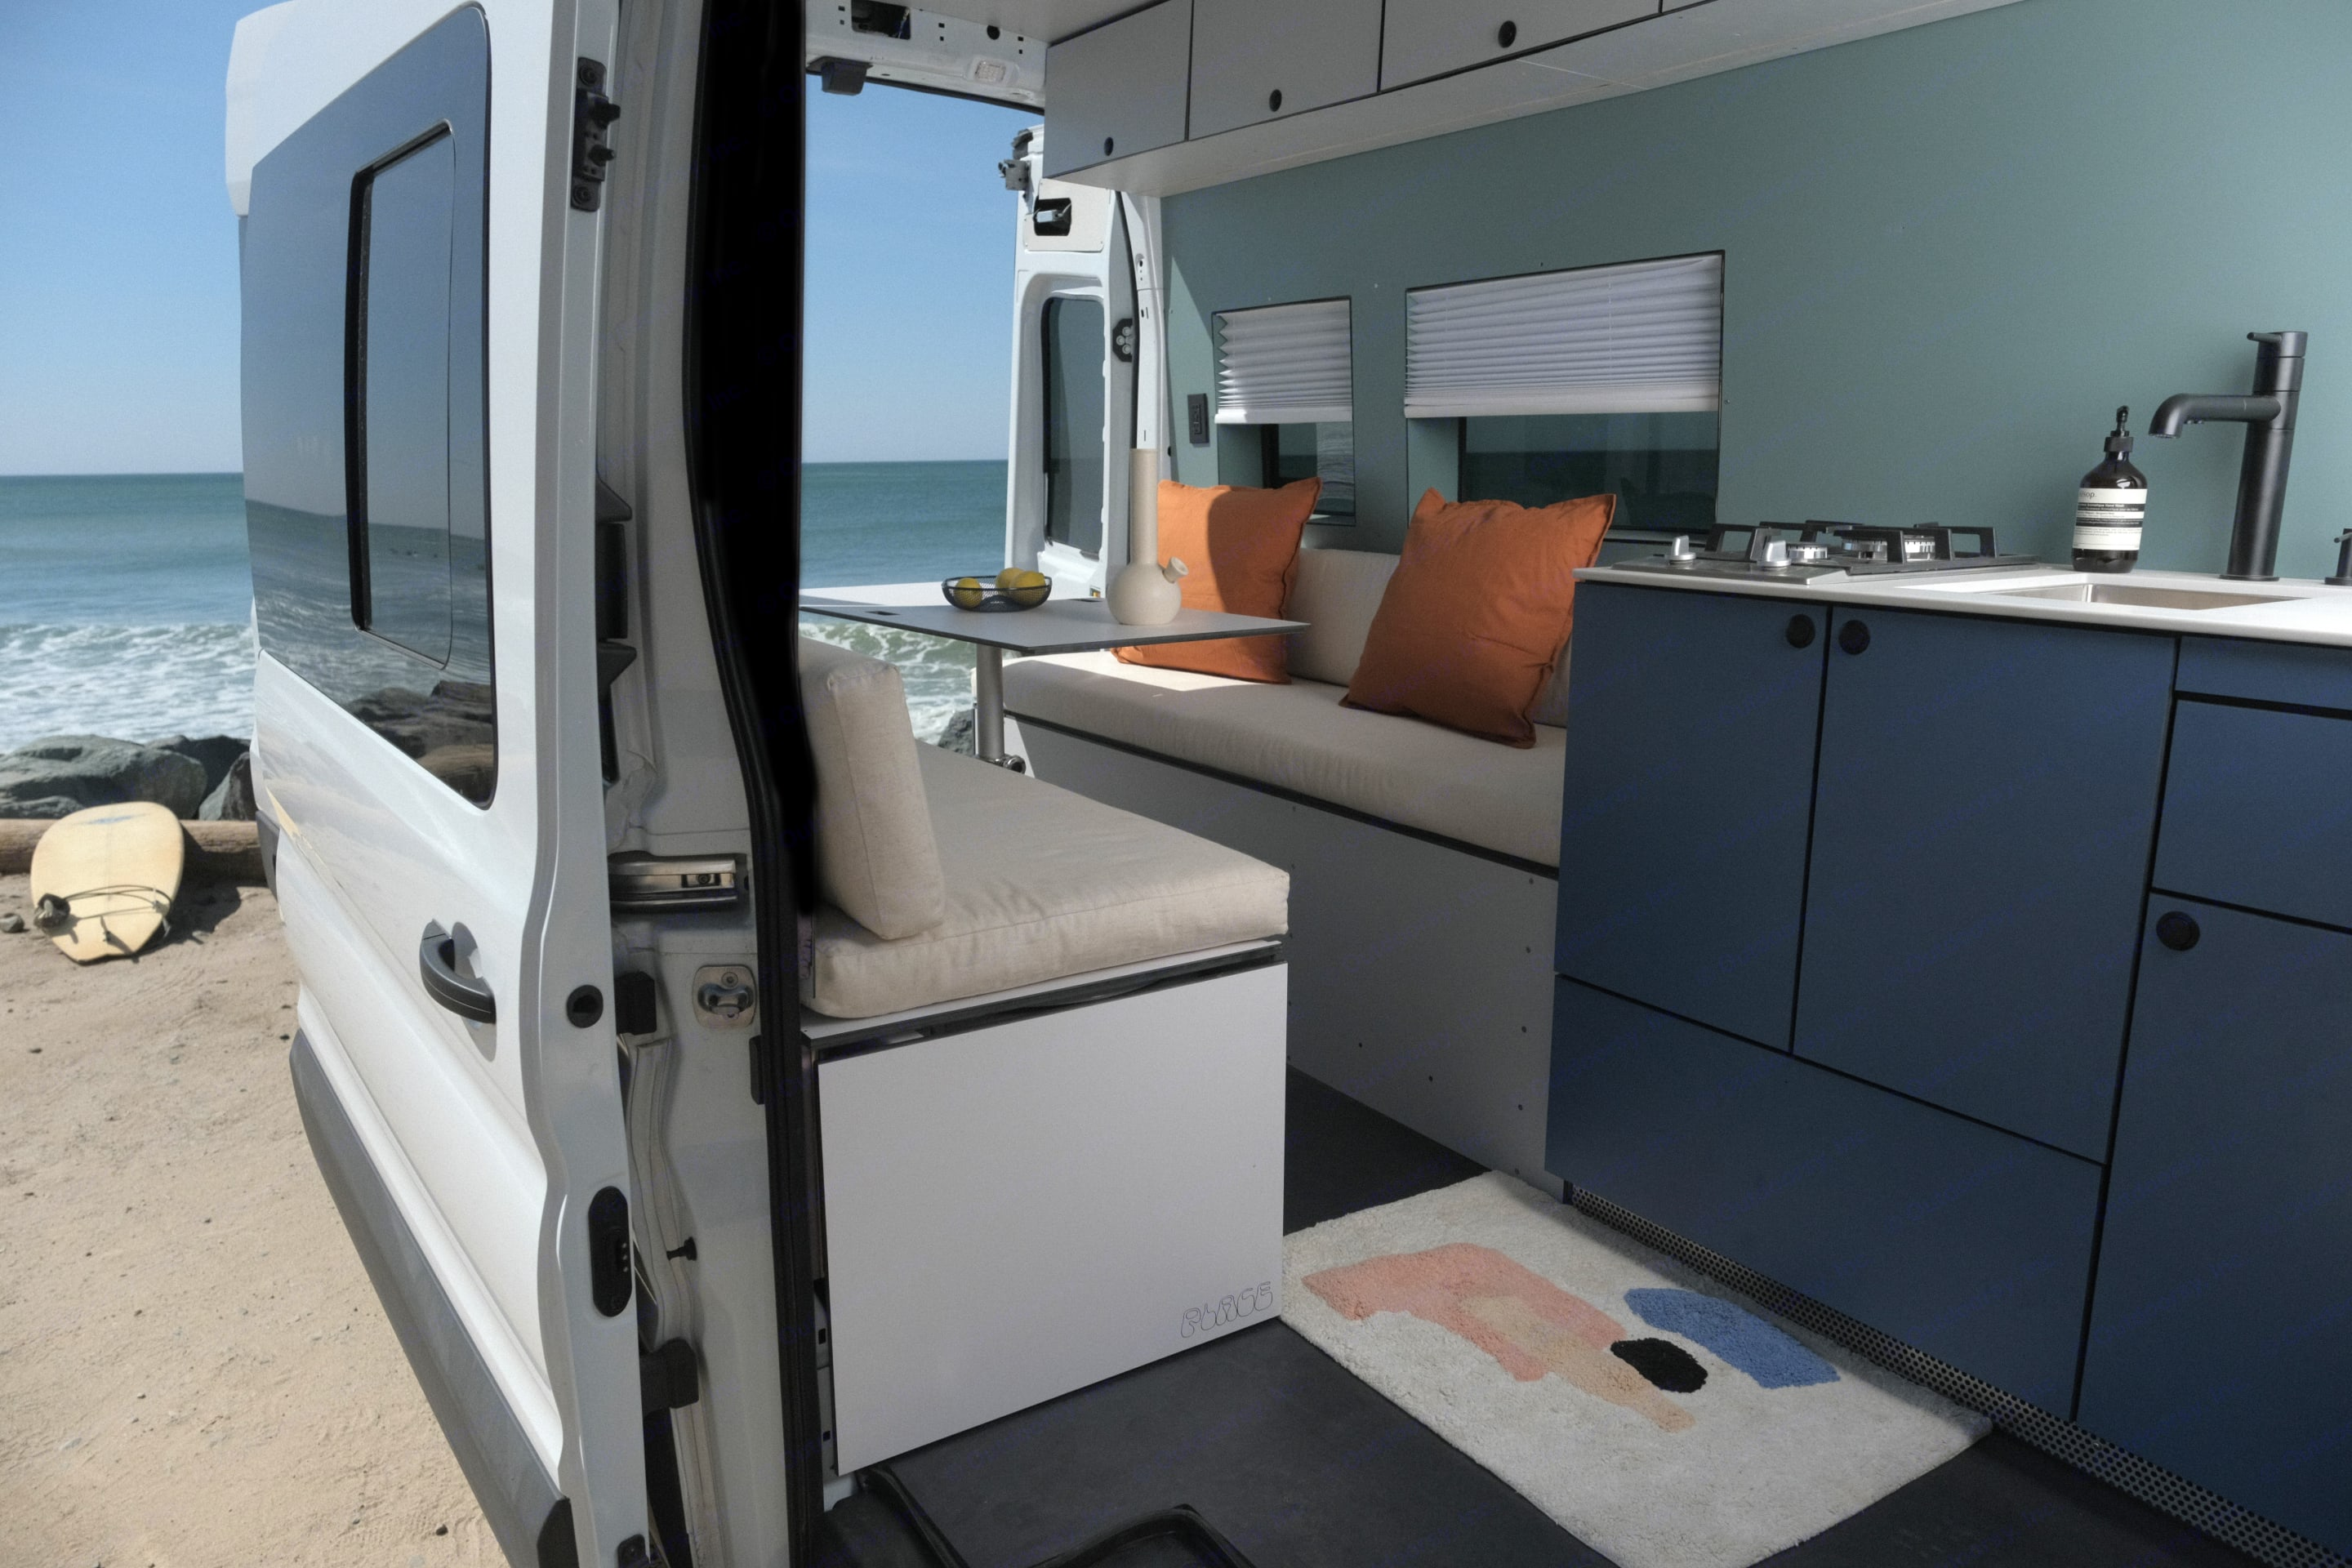 Kitchen and dinning table lowers down and two leafs are added to convert into sleeping area. Ford Transit 250 2020